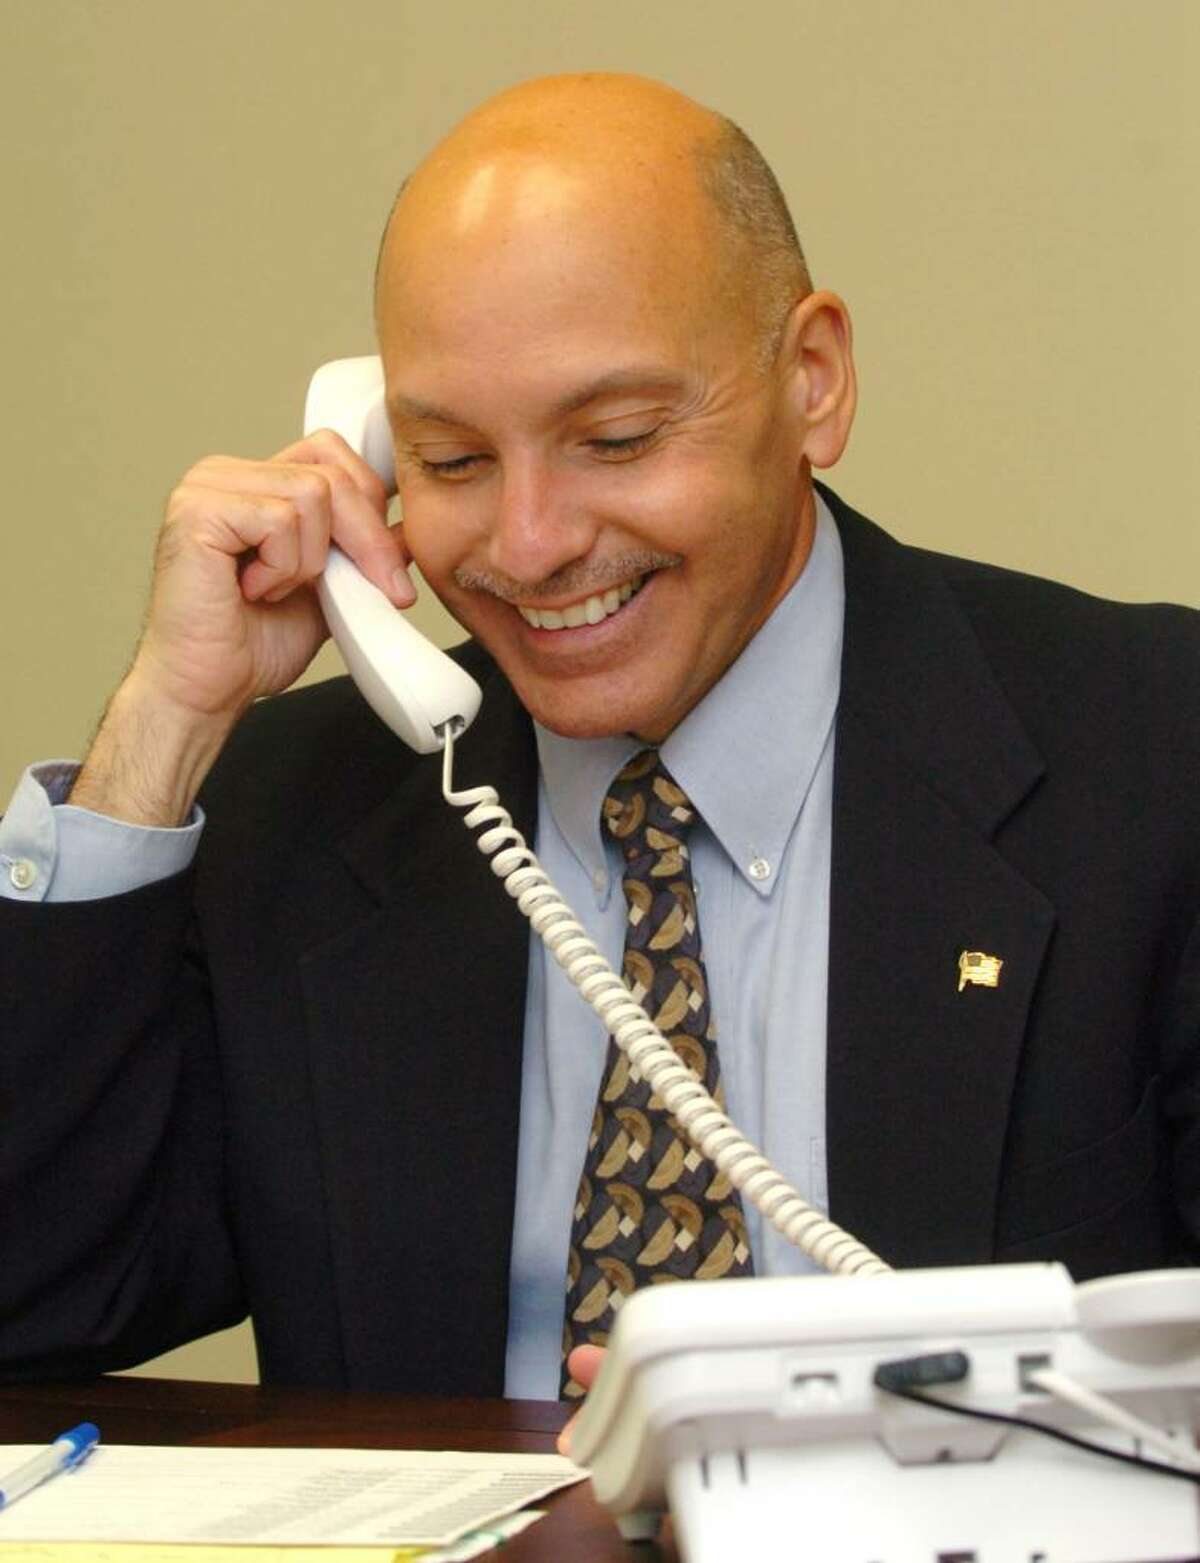 Gary Goncalves, works on his campaign, Wednesday, Oct. 7, 2009.